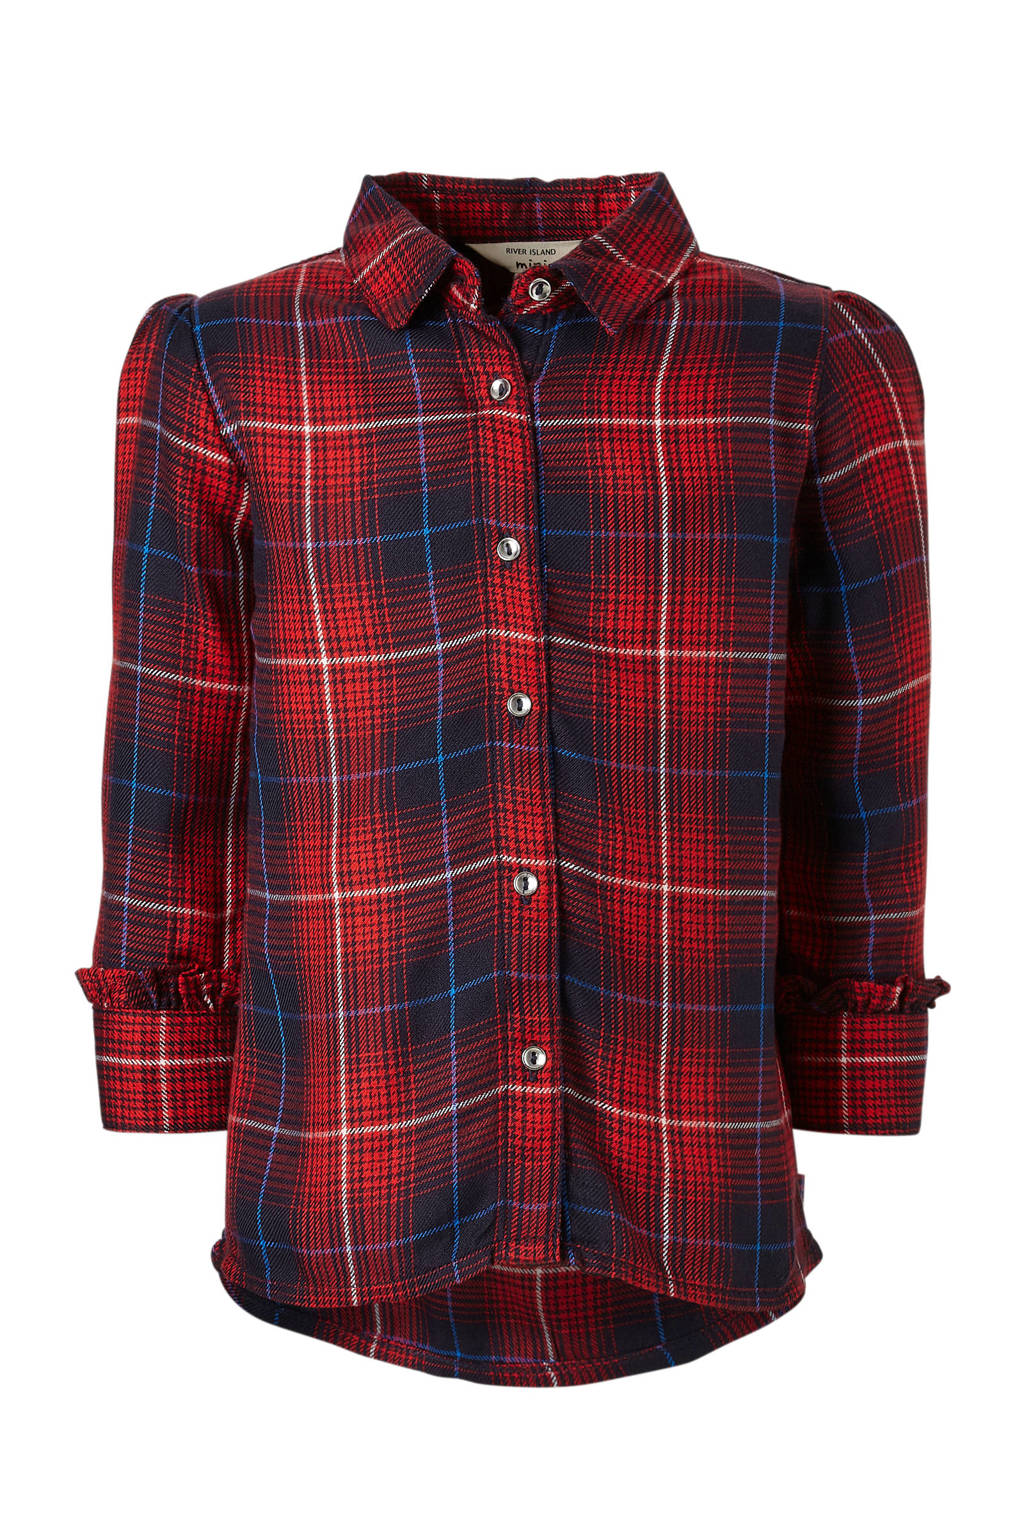 River Island geruite blouse, Rood/blauw/wit